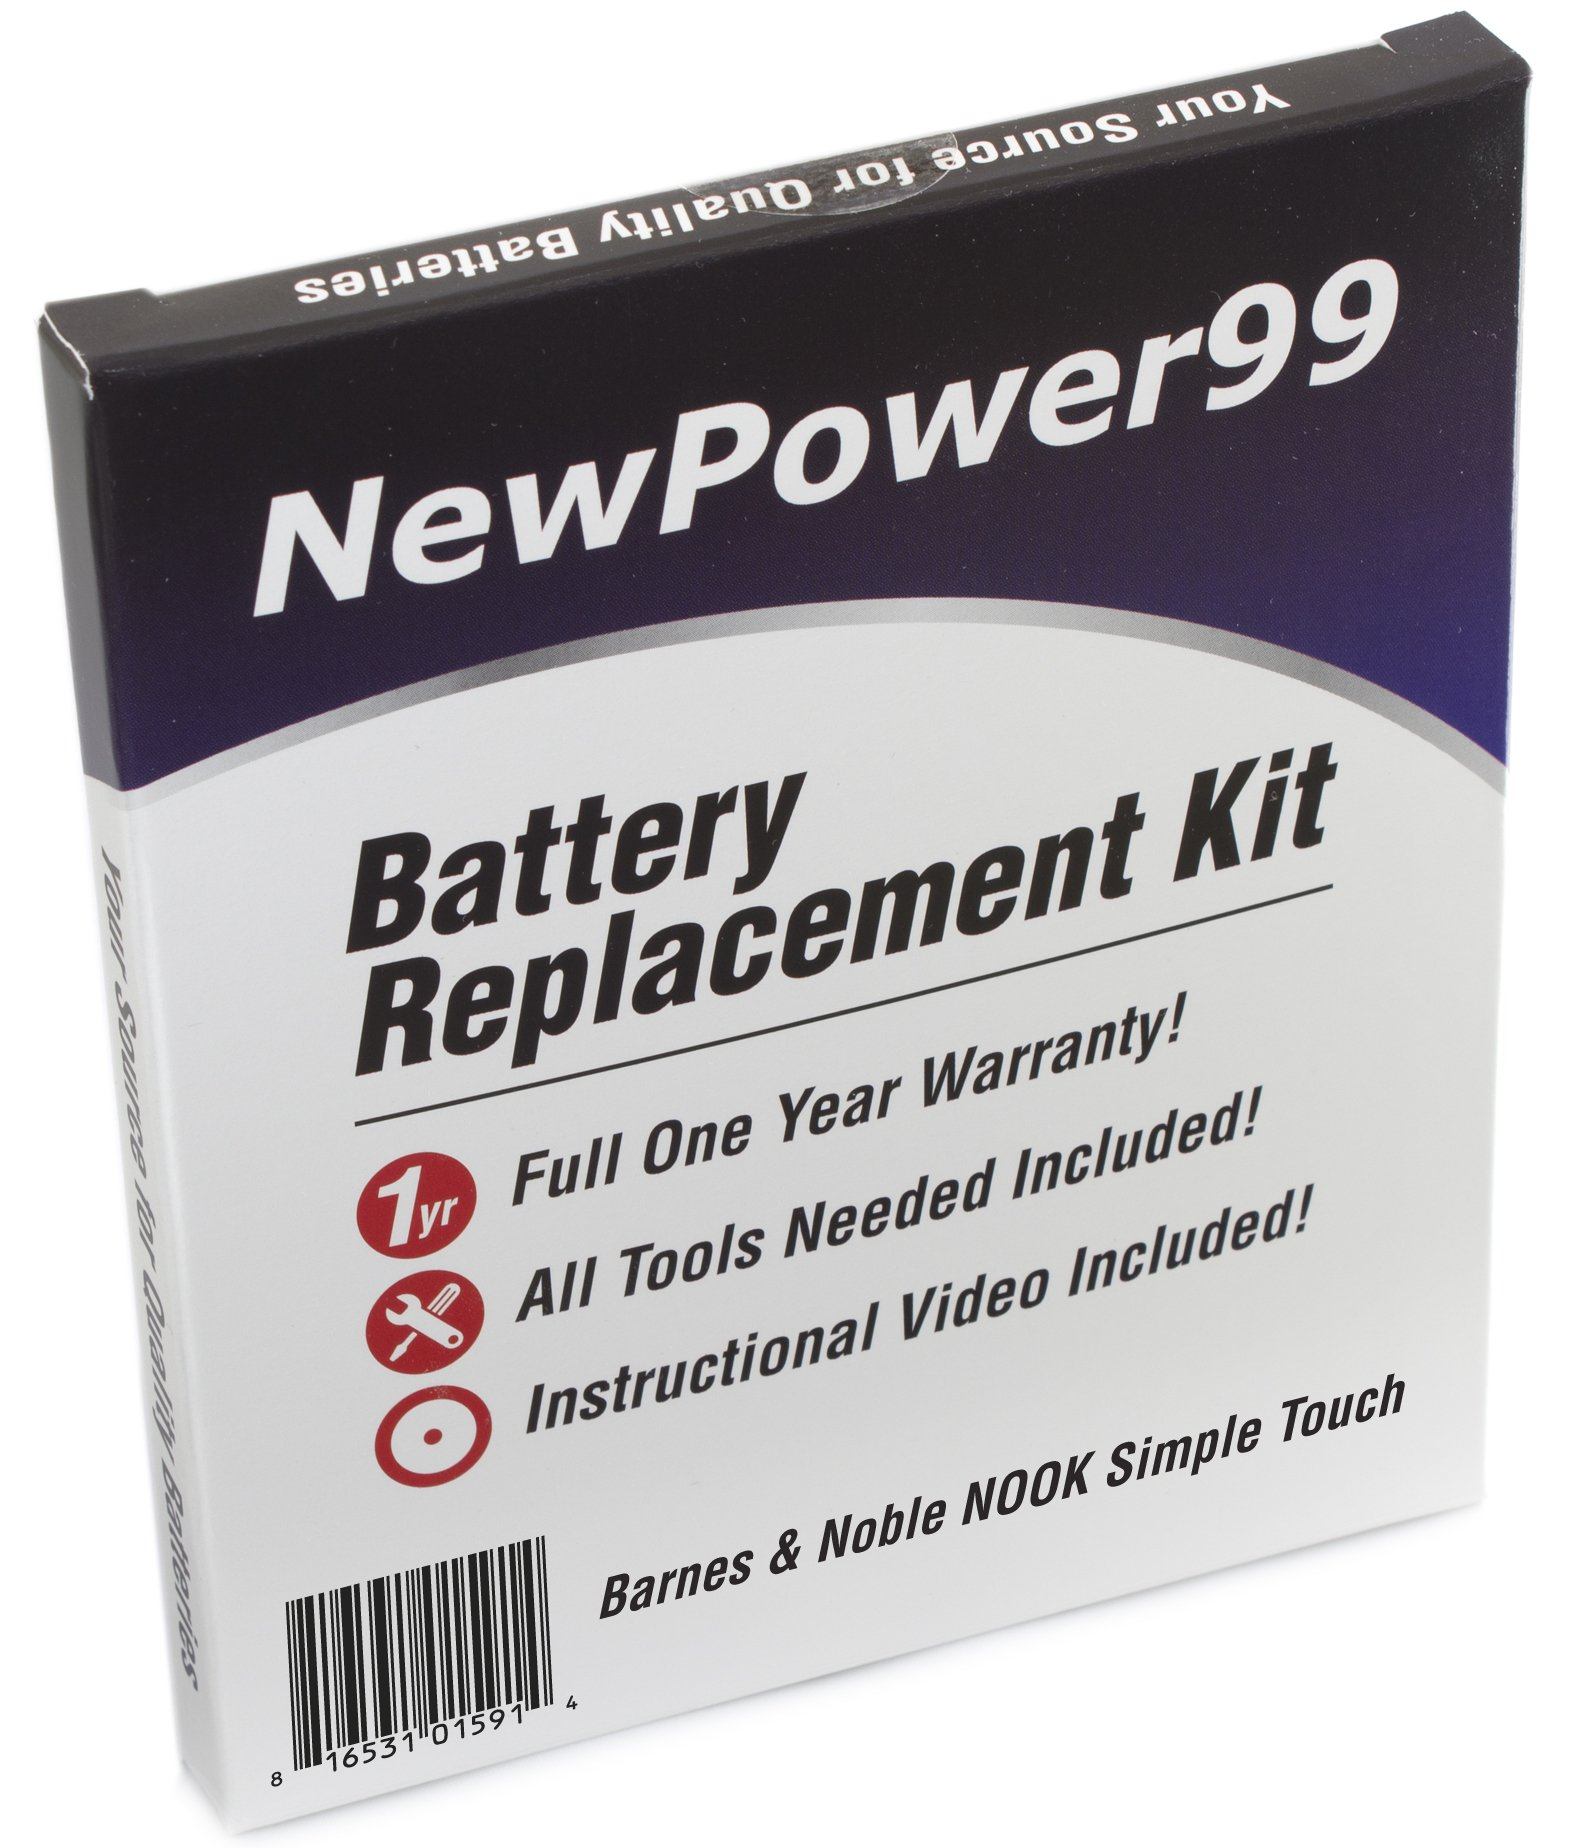 Battery Replacement Kit for the Barnes and Noble NOOK Simple Touch with Installation Video, Tools, and Extended Life Battery.